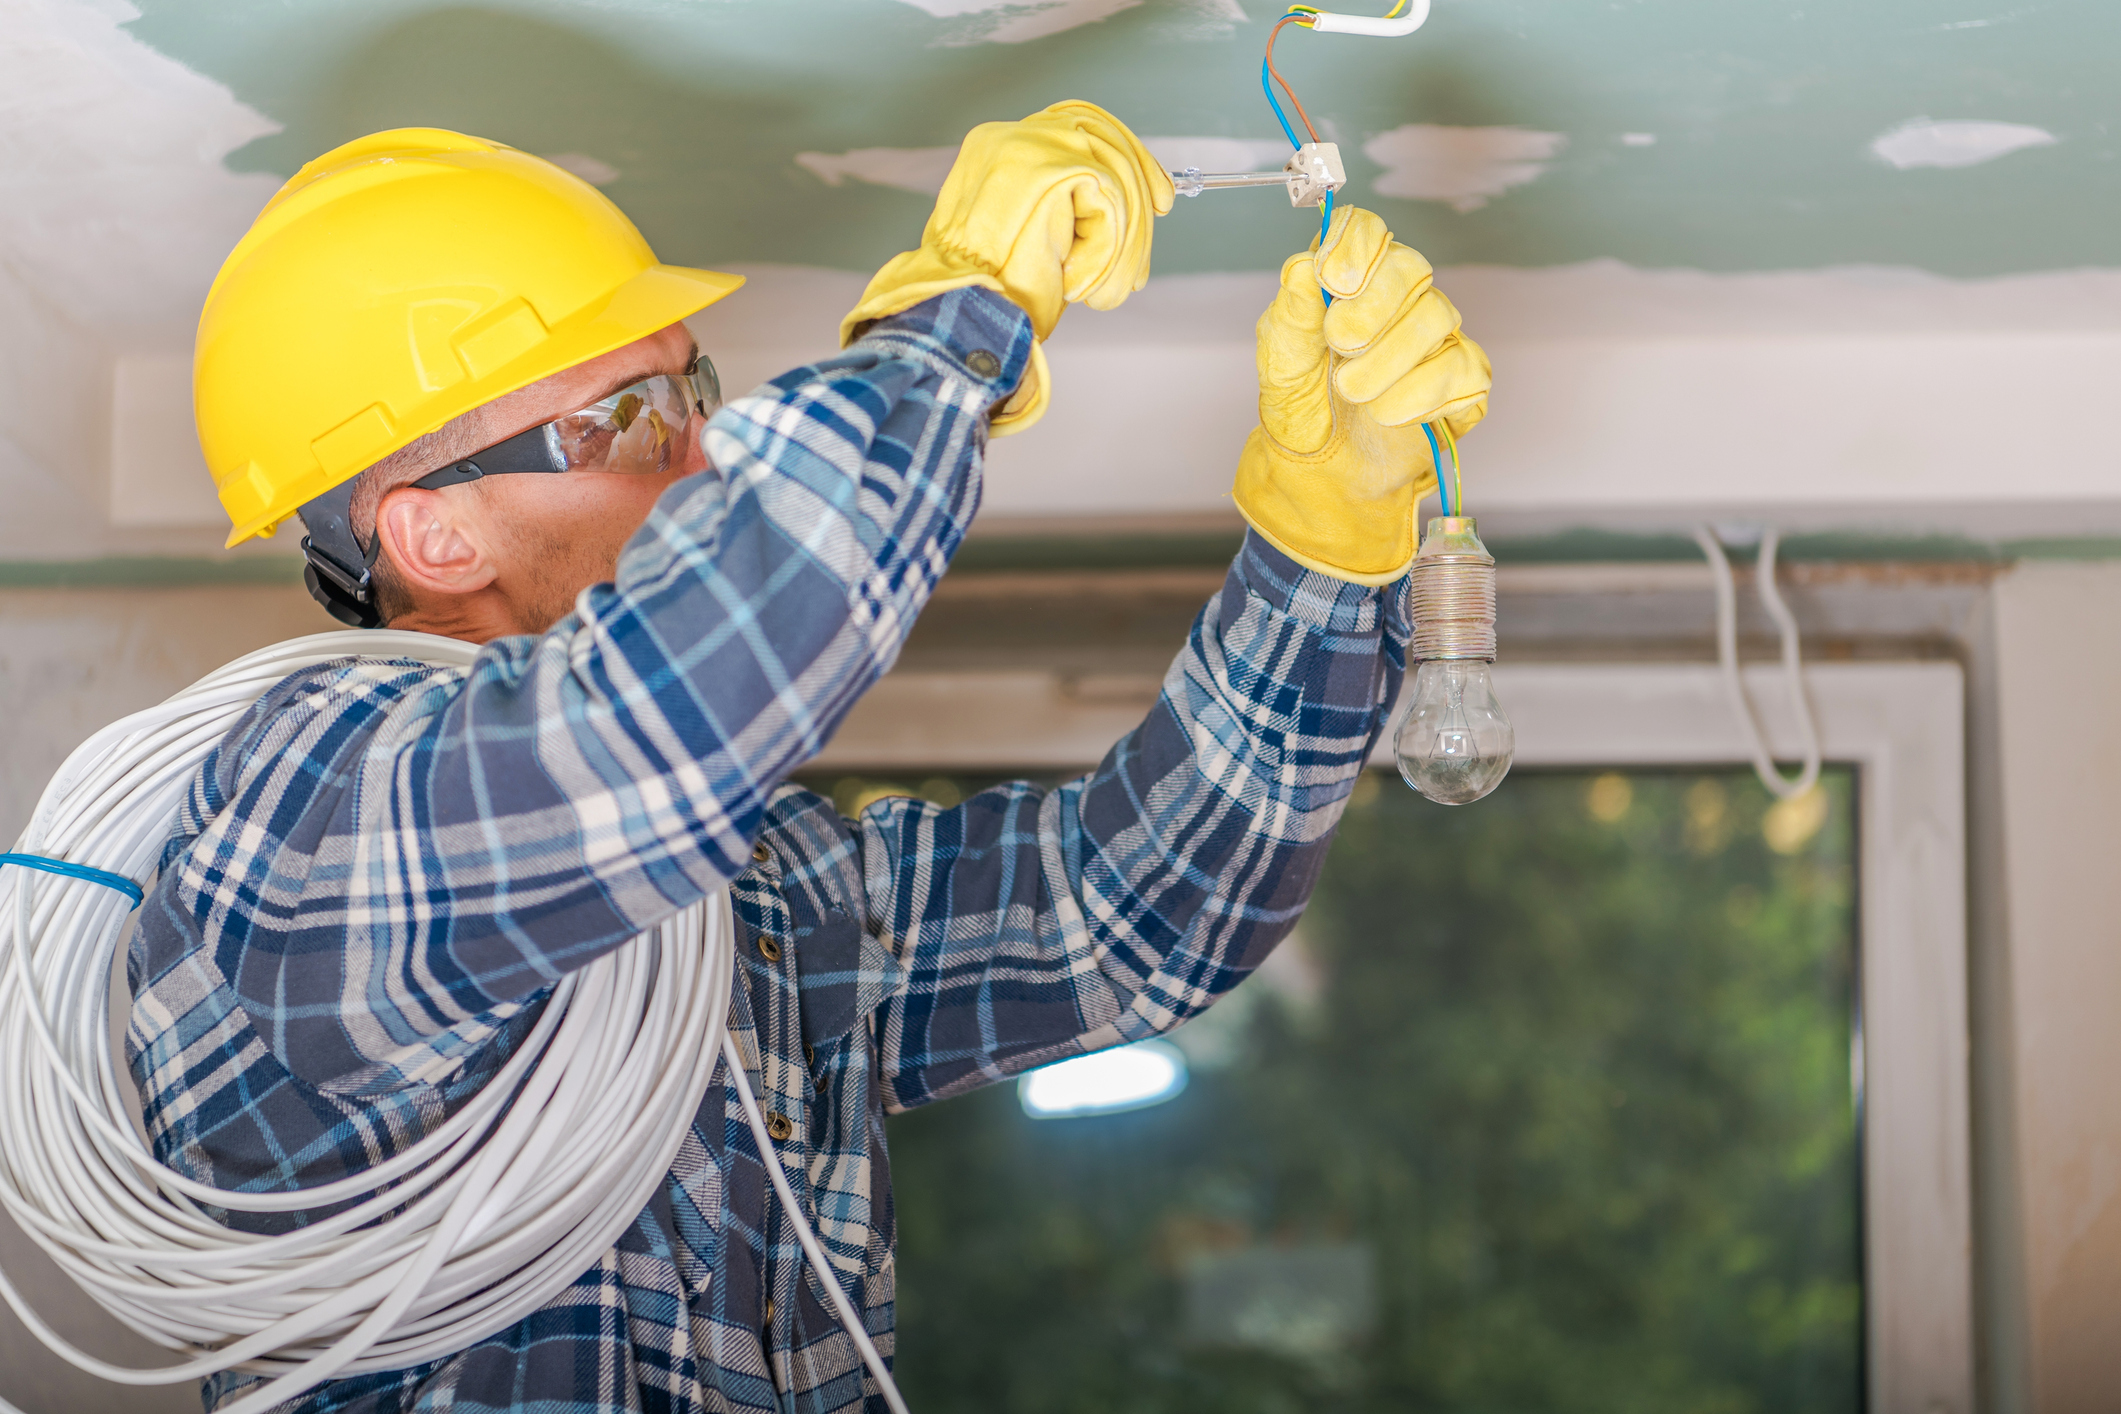 Diligent Electrical Services